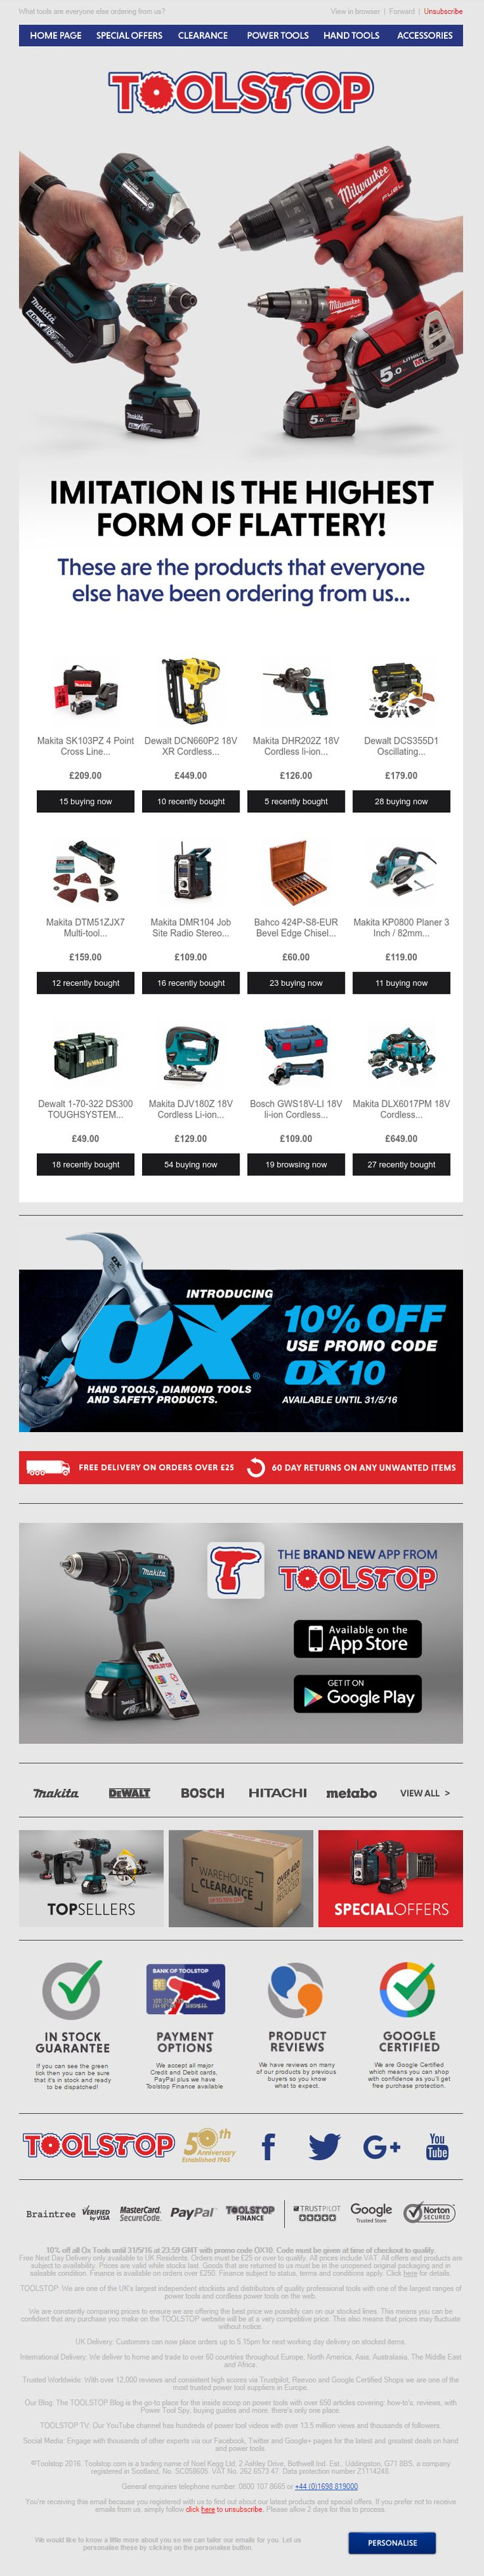 76 best Cyber Monday Emails images on Pinterest